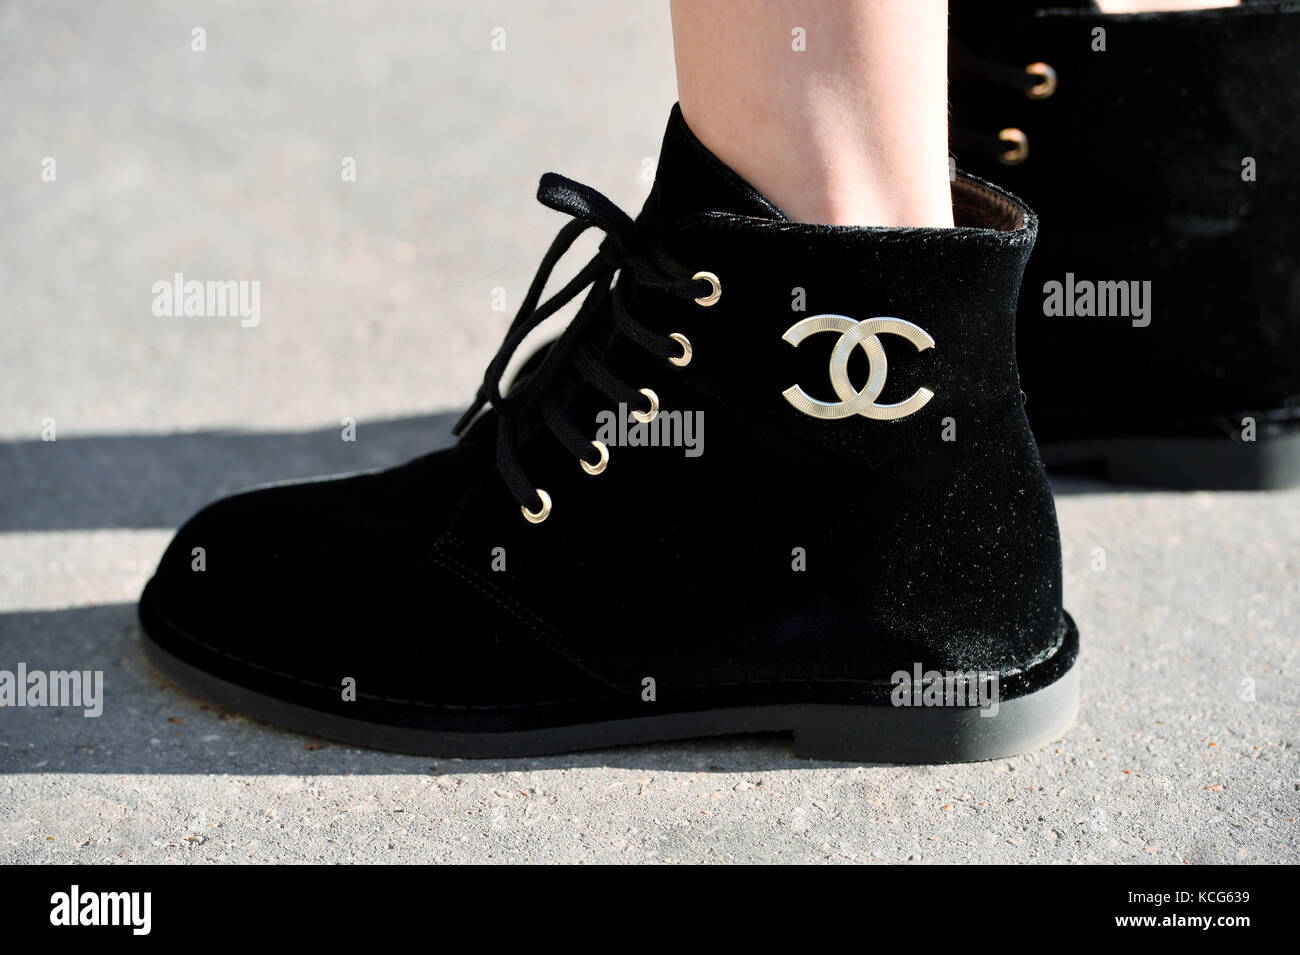 Chanel Shoes High Resolution Stock